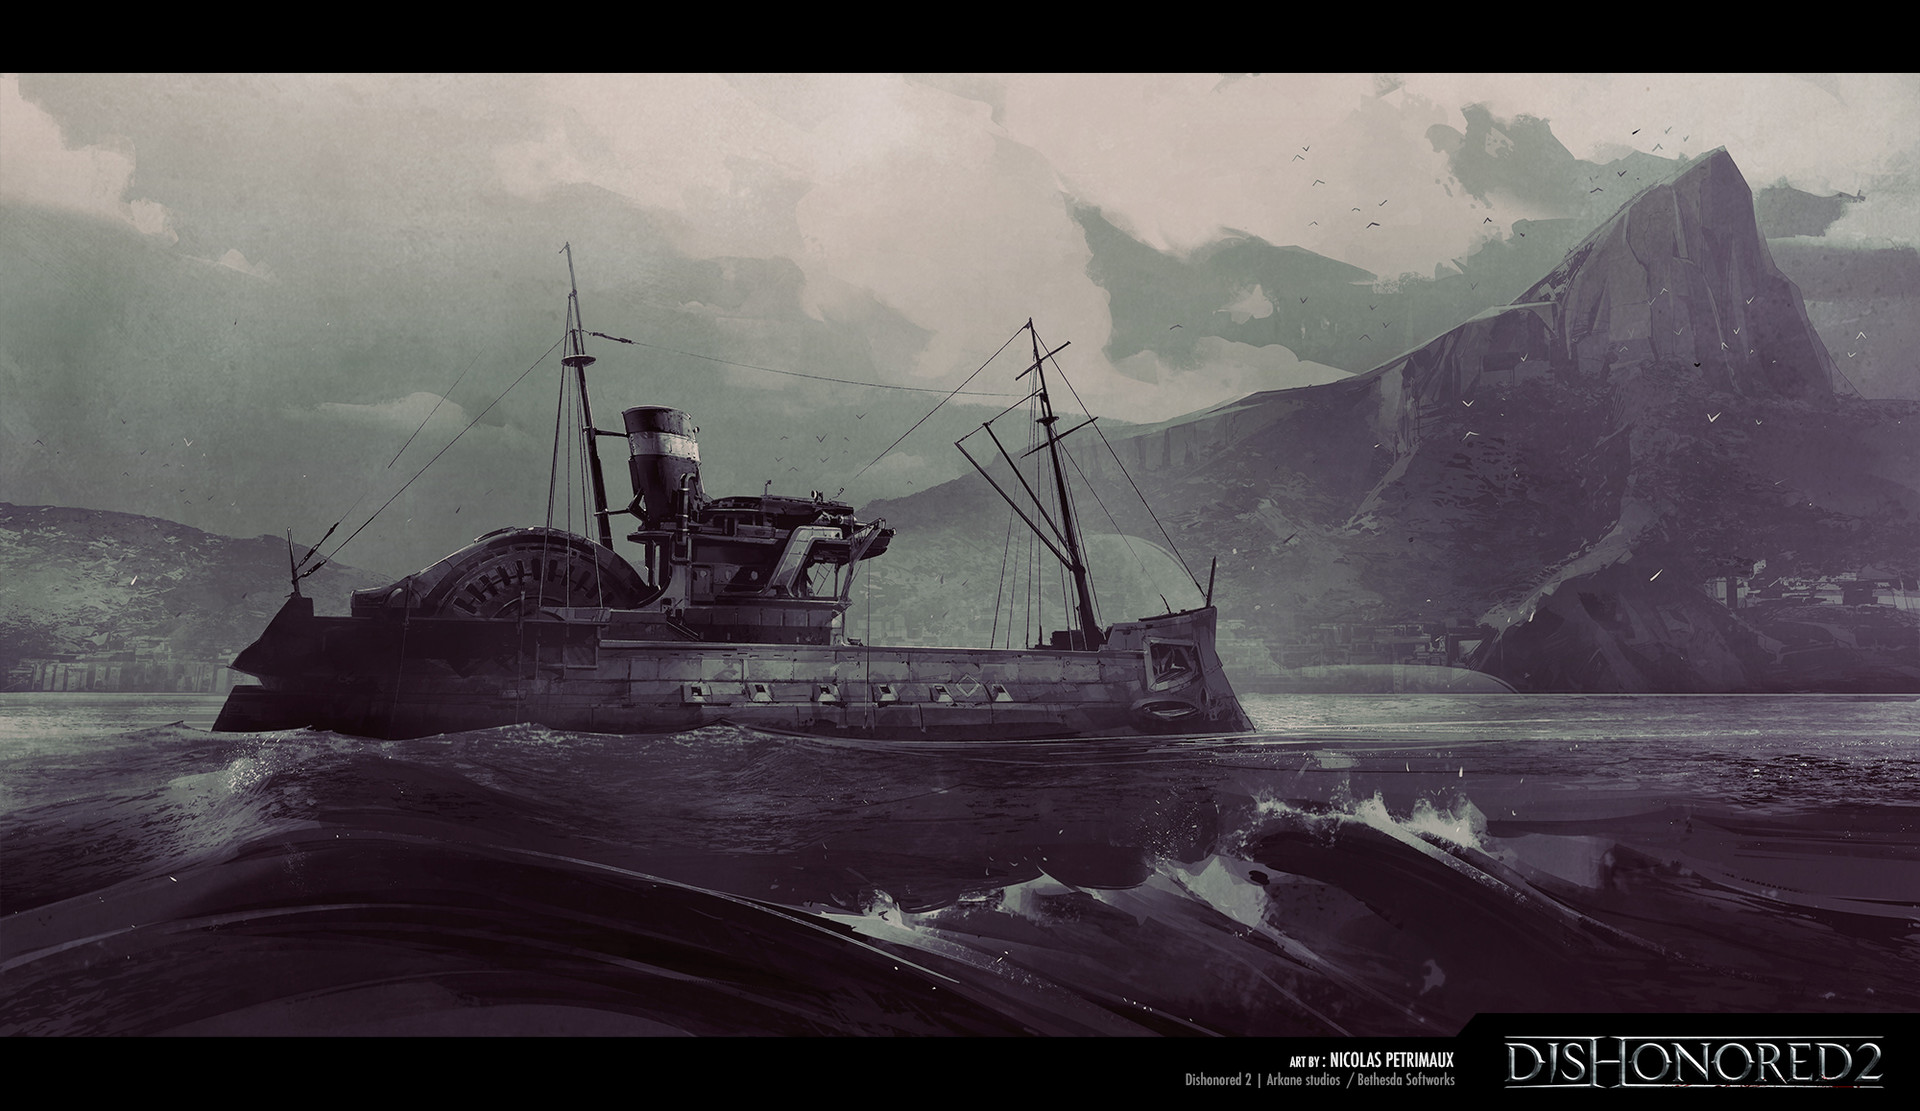 Nicolas petrimaux templatecredit dishonored2 loadboat